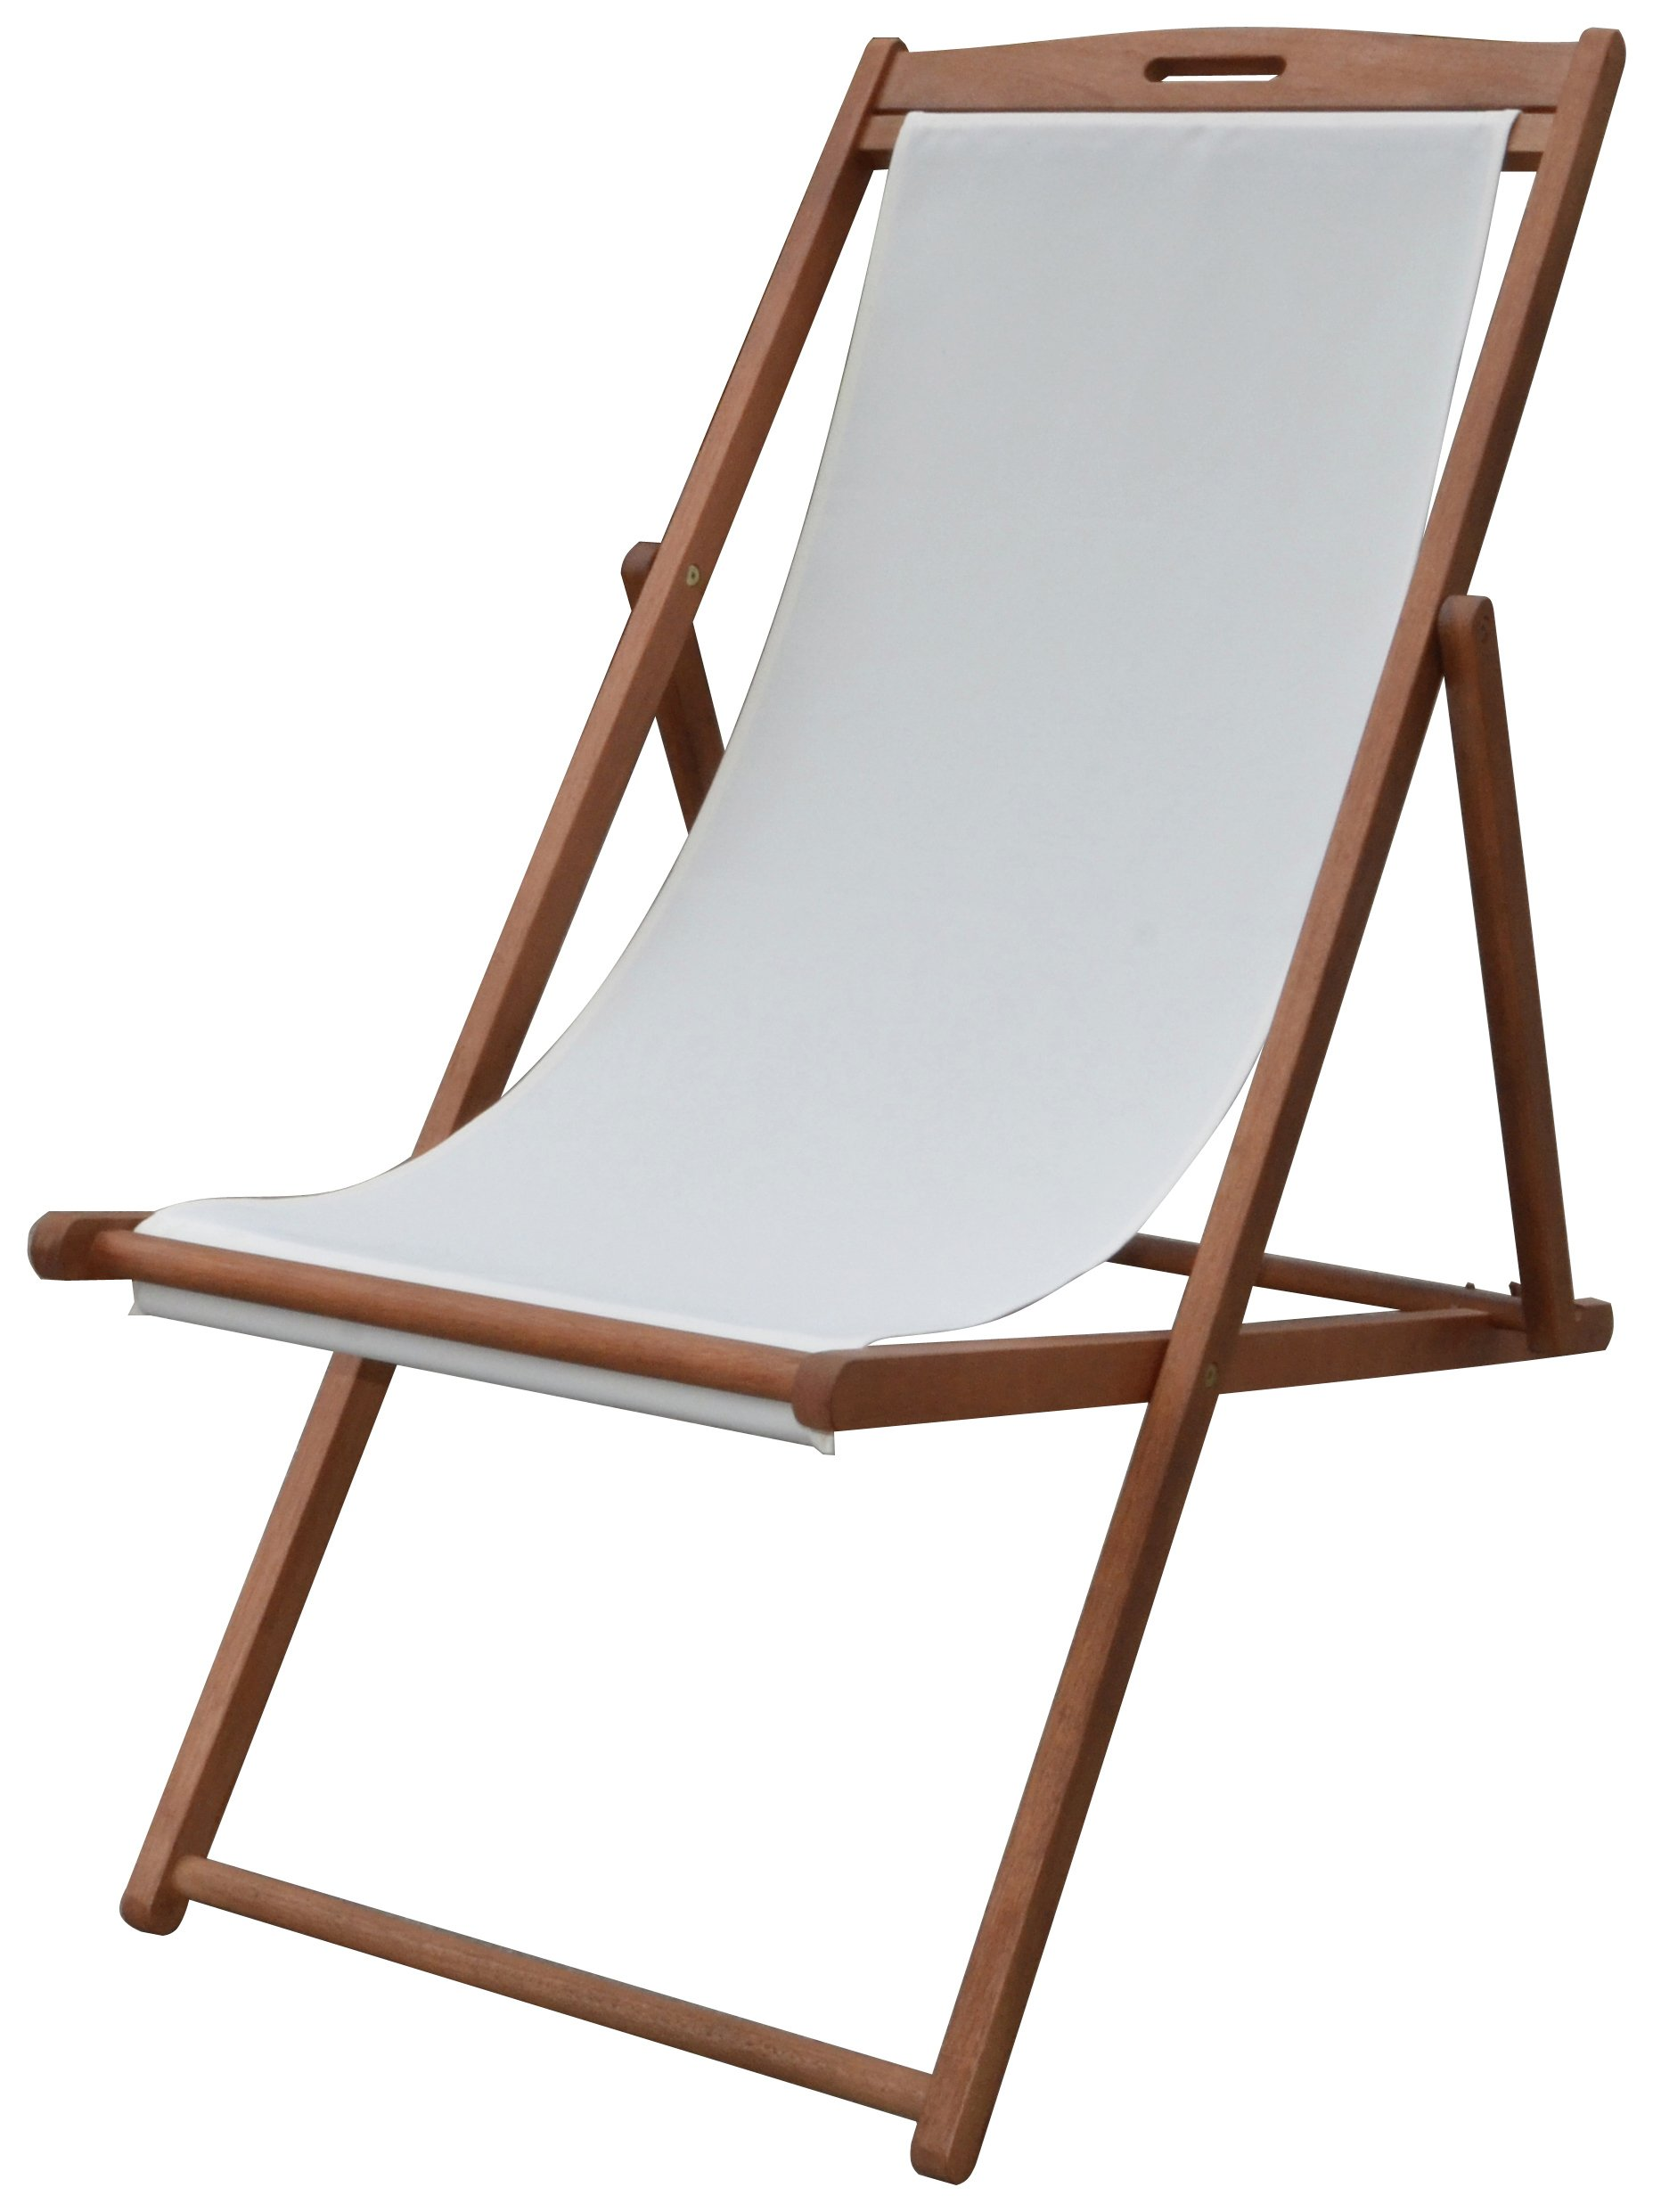 deck chairs home deck chair - cream YKYWTGP